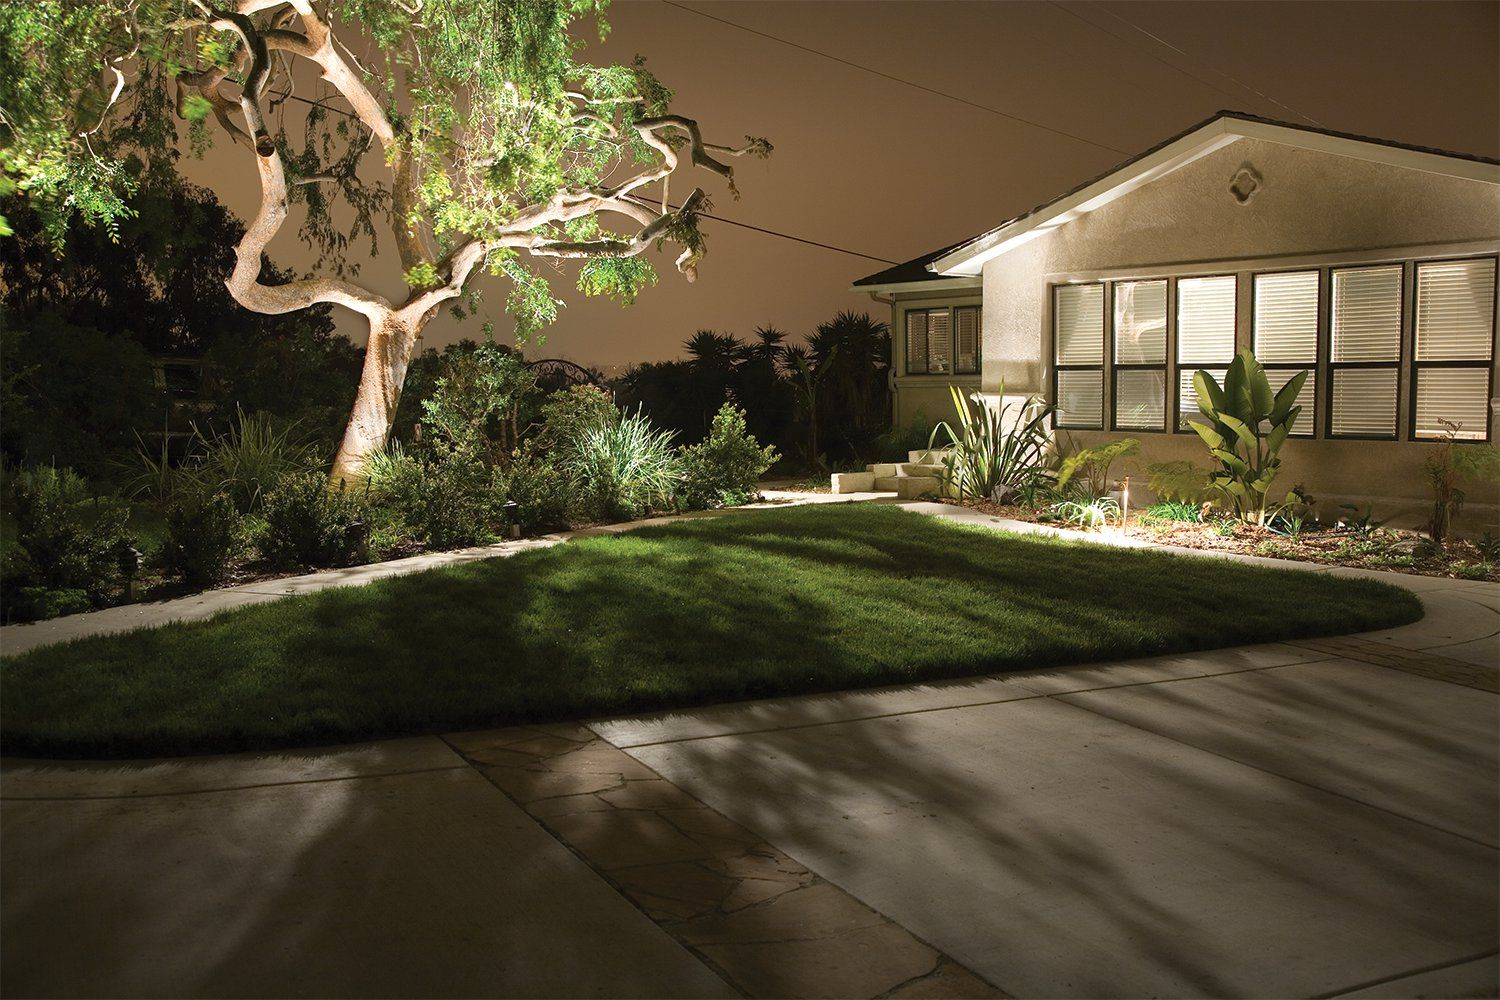 Front house and pathway up lighting example